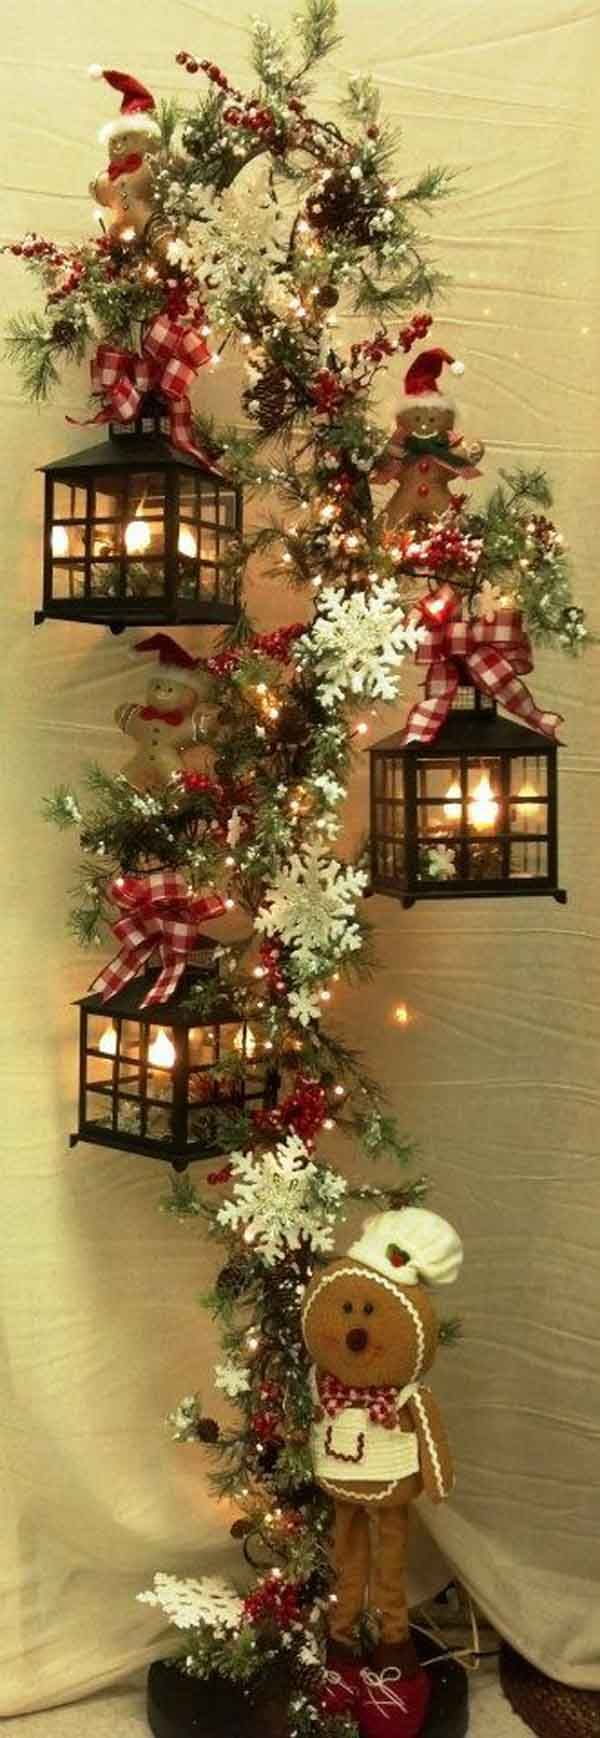 Uncategorized christmas decorations amp holiday decorations - 23 Stunning Christmas Lantern Decorations To Brighten Up The Holiday